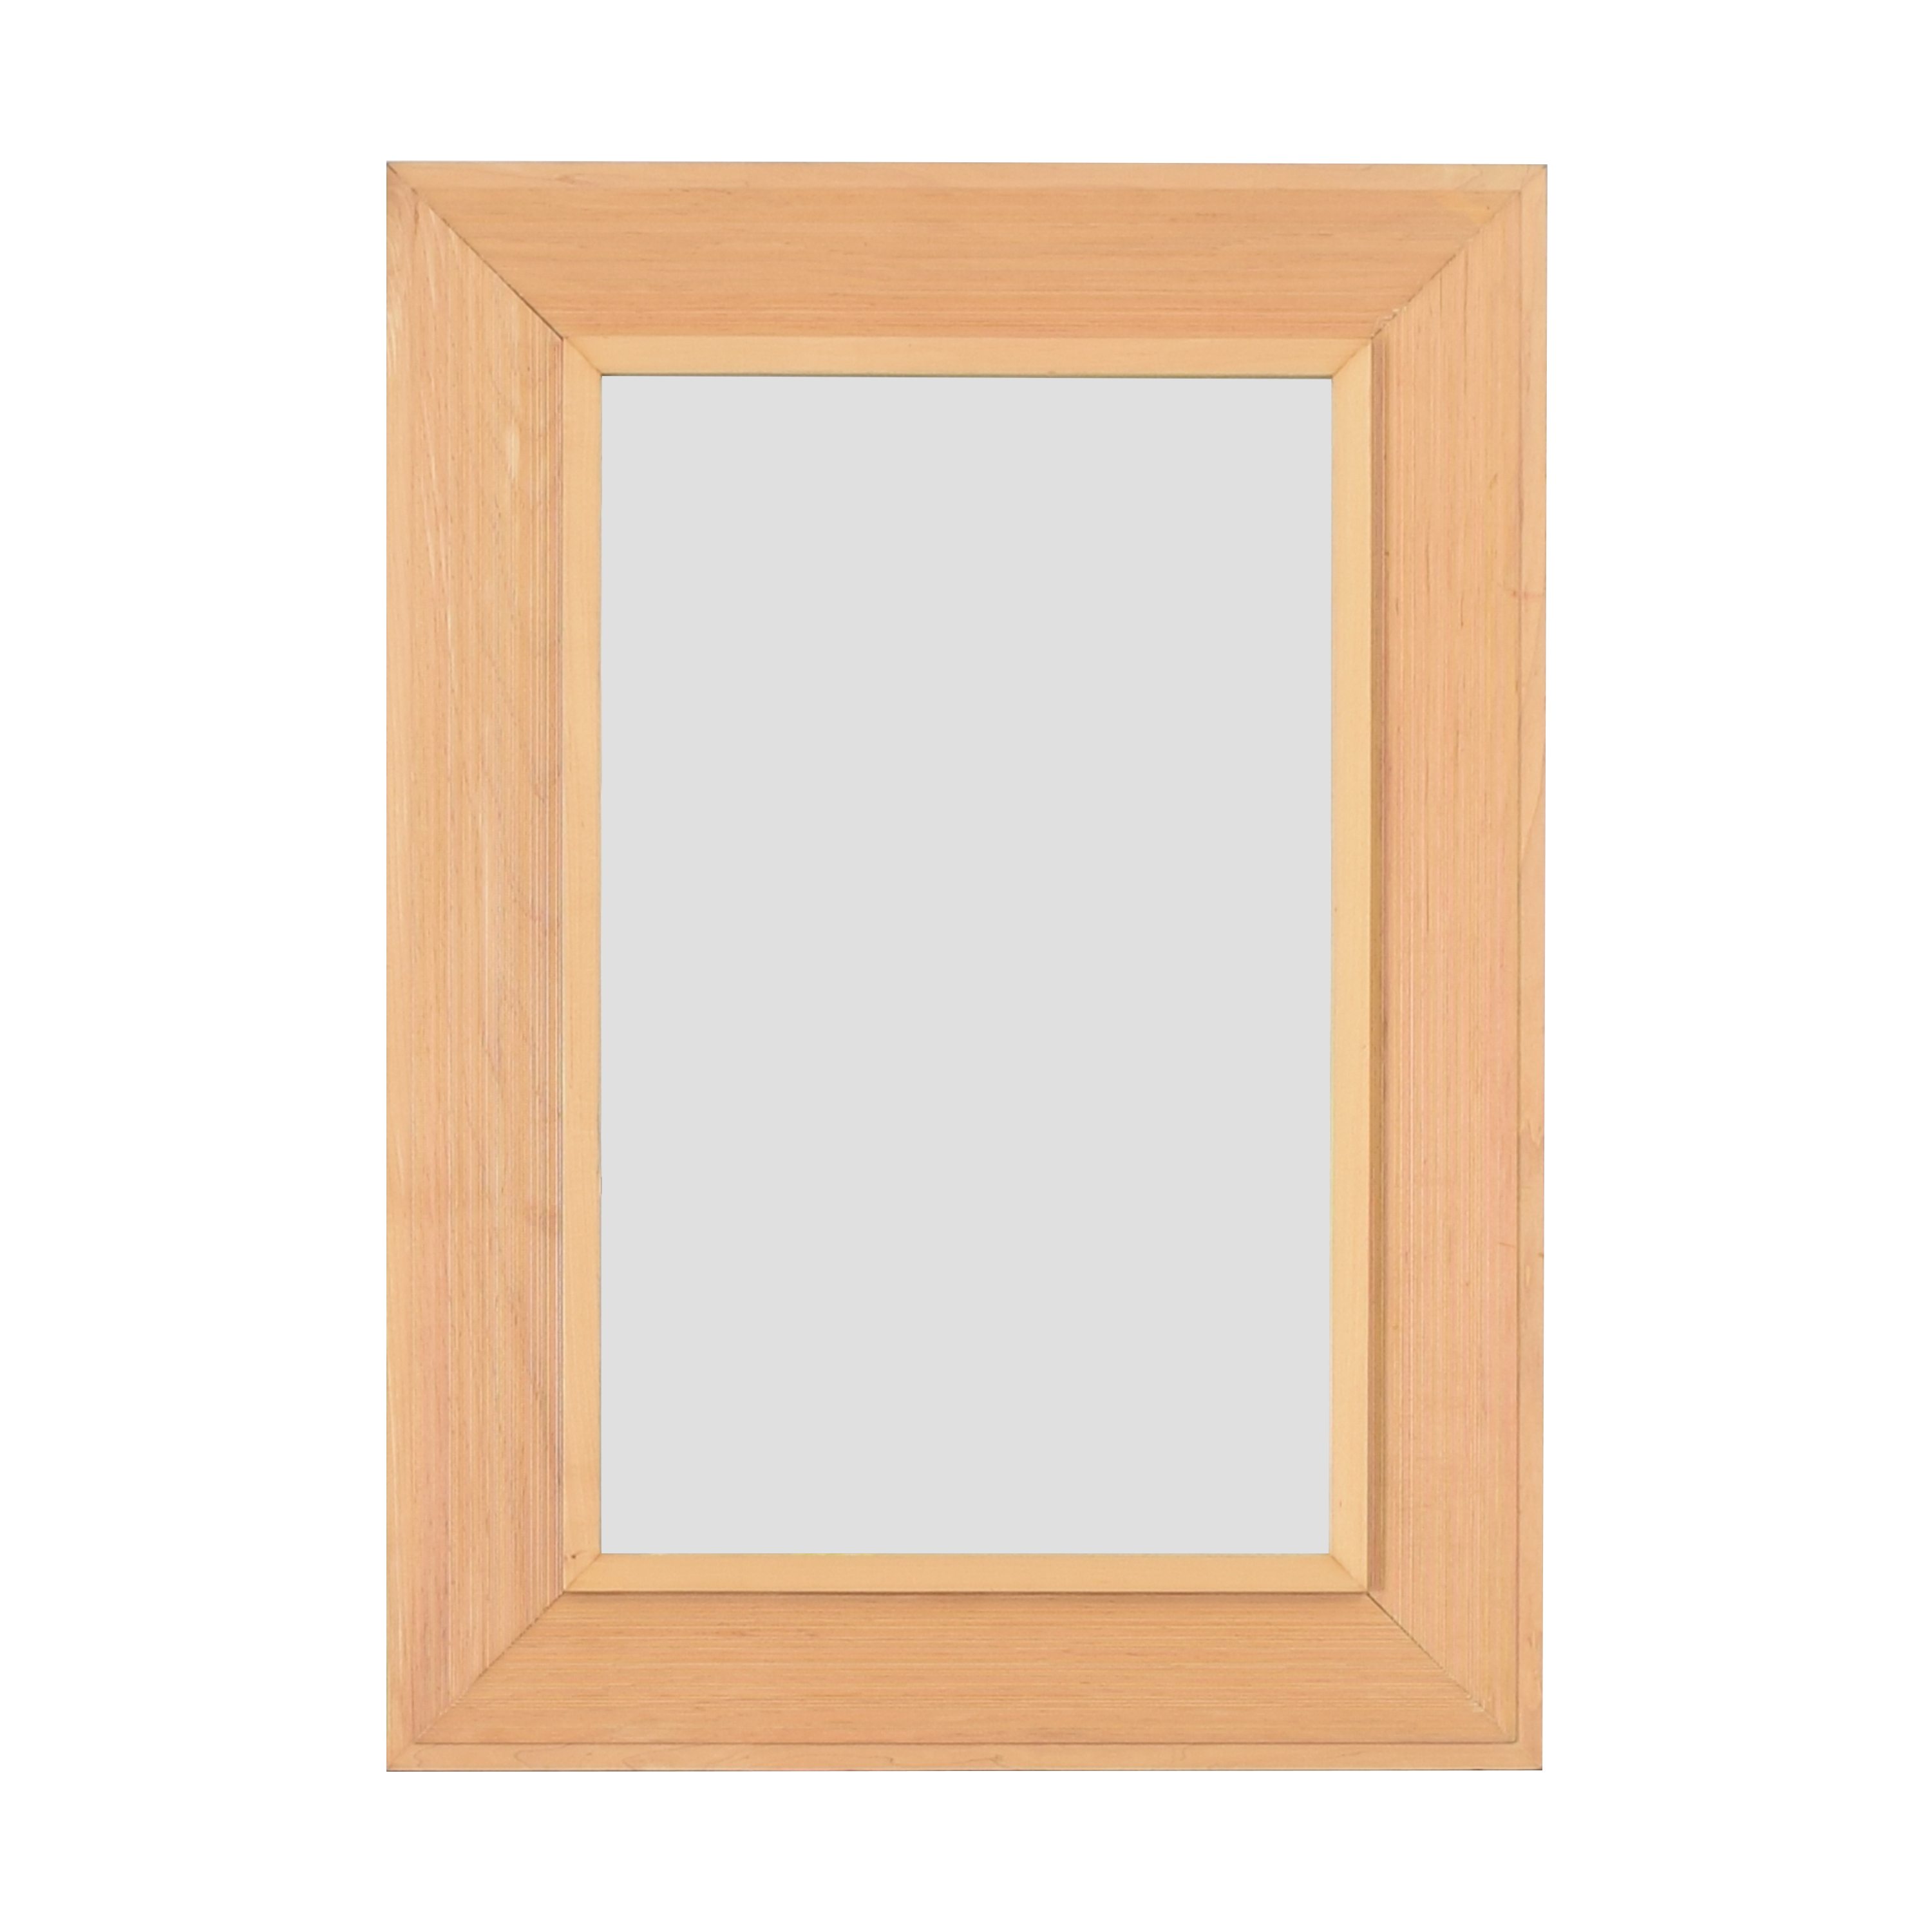 Crate & Barrel Crate & Barrel Framed Mirror on sale